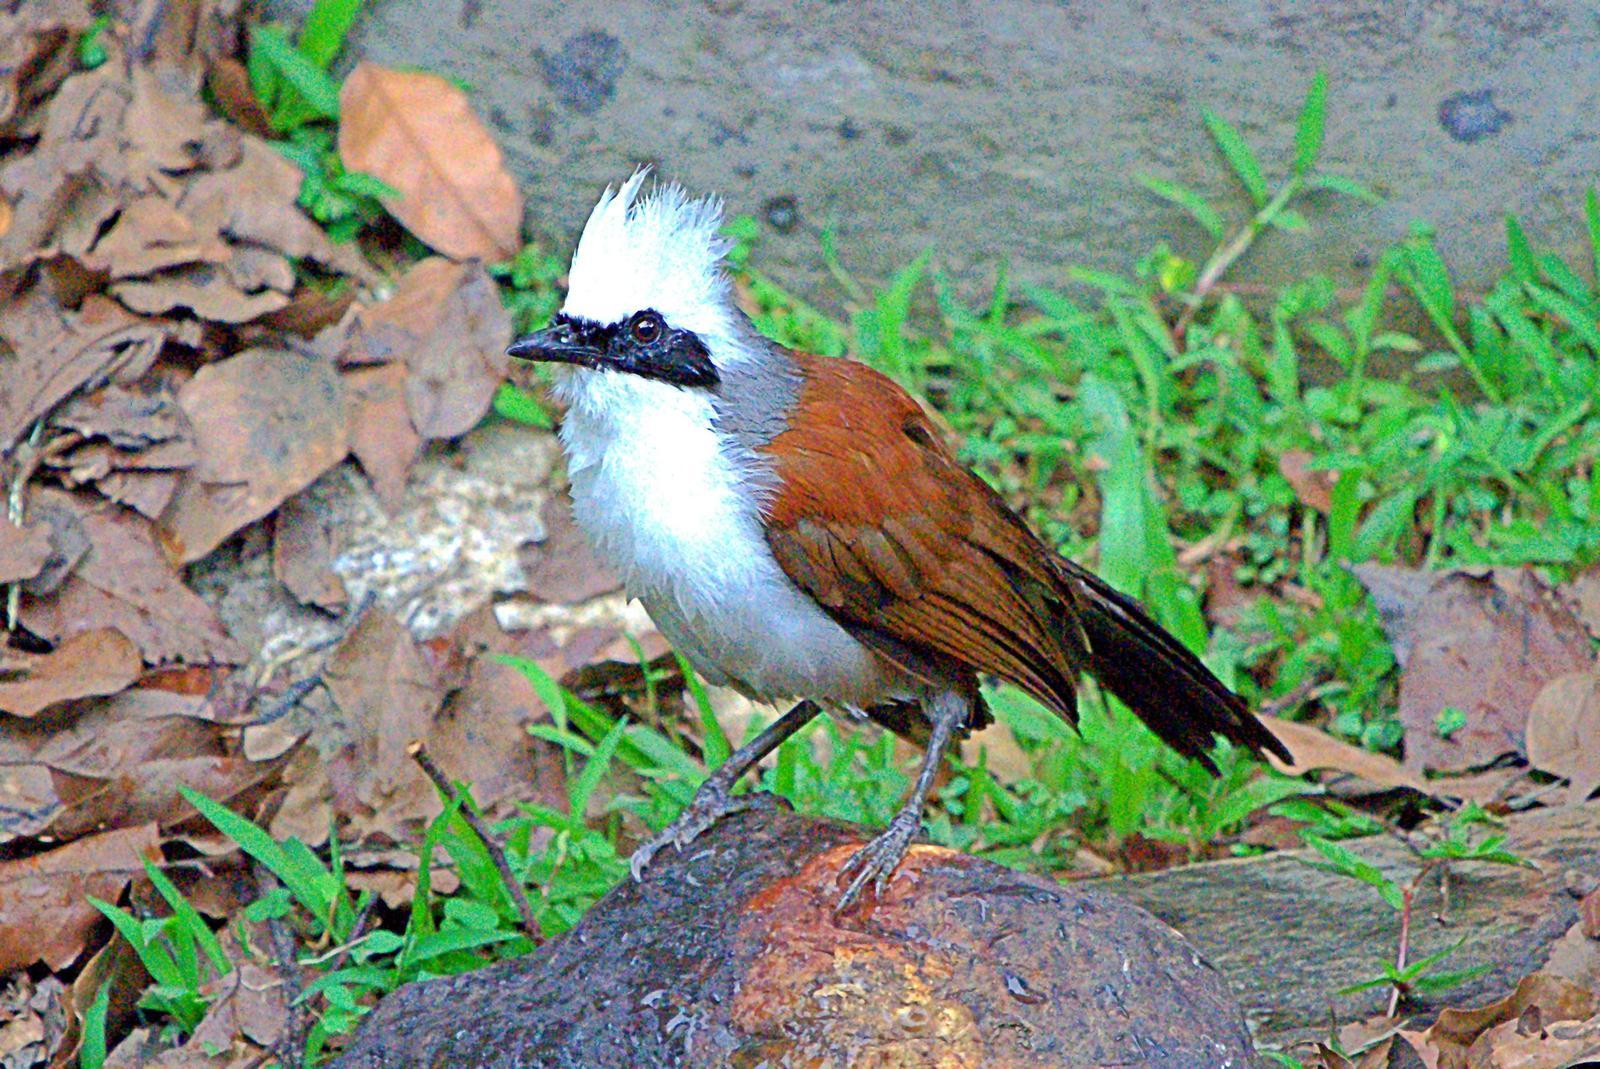 White-crested Laughingthrush Photo by Steven Cheong